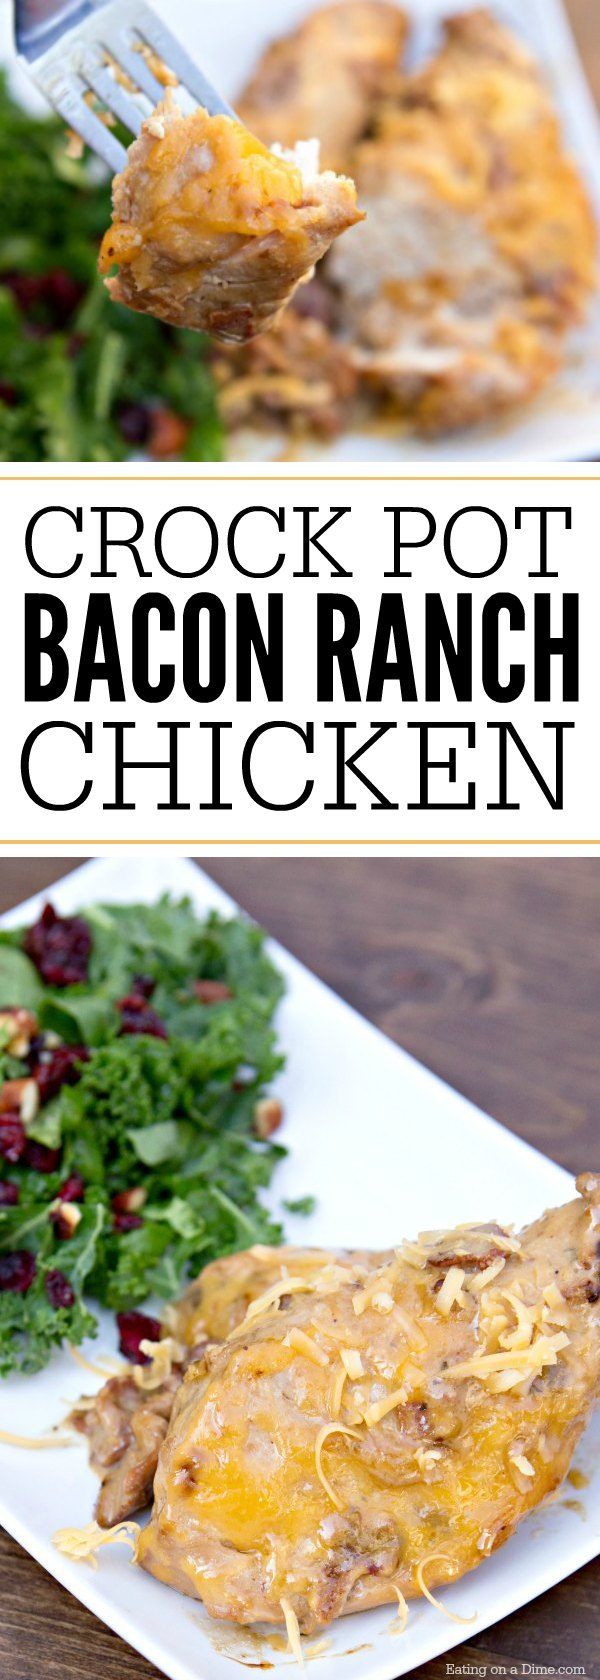 Try this easy Crockpot Bacon Chicken Recipe. It is super simple and packed with flavor. You will be shocked how delicious this easy crock pot recipe is!